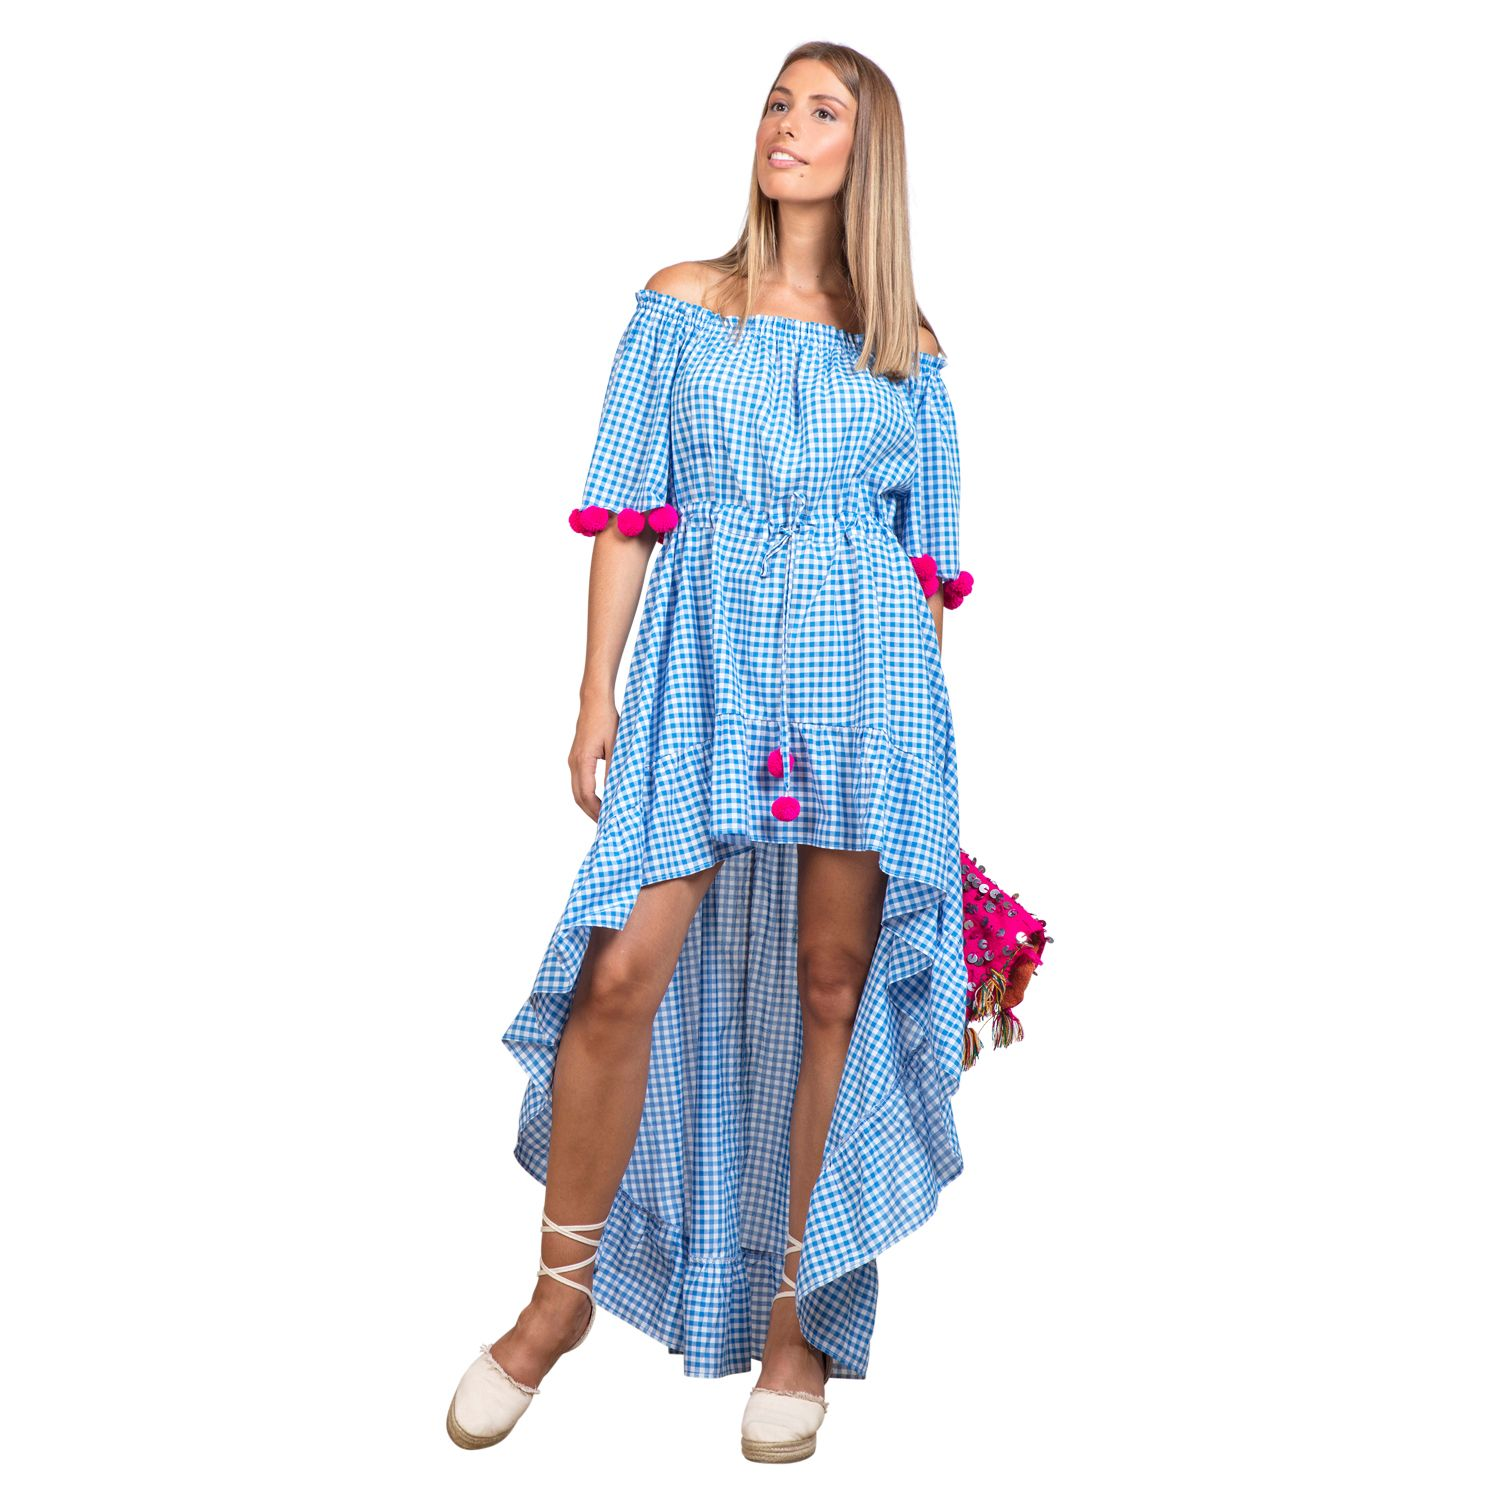 1f765d4b08b Our Alena Light Blue Gingham Dress from Sundress is perfect for your winter  getaways! This chic midi dress features a hi low ruffled hem